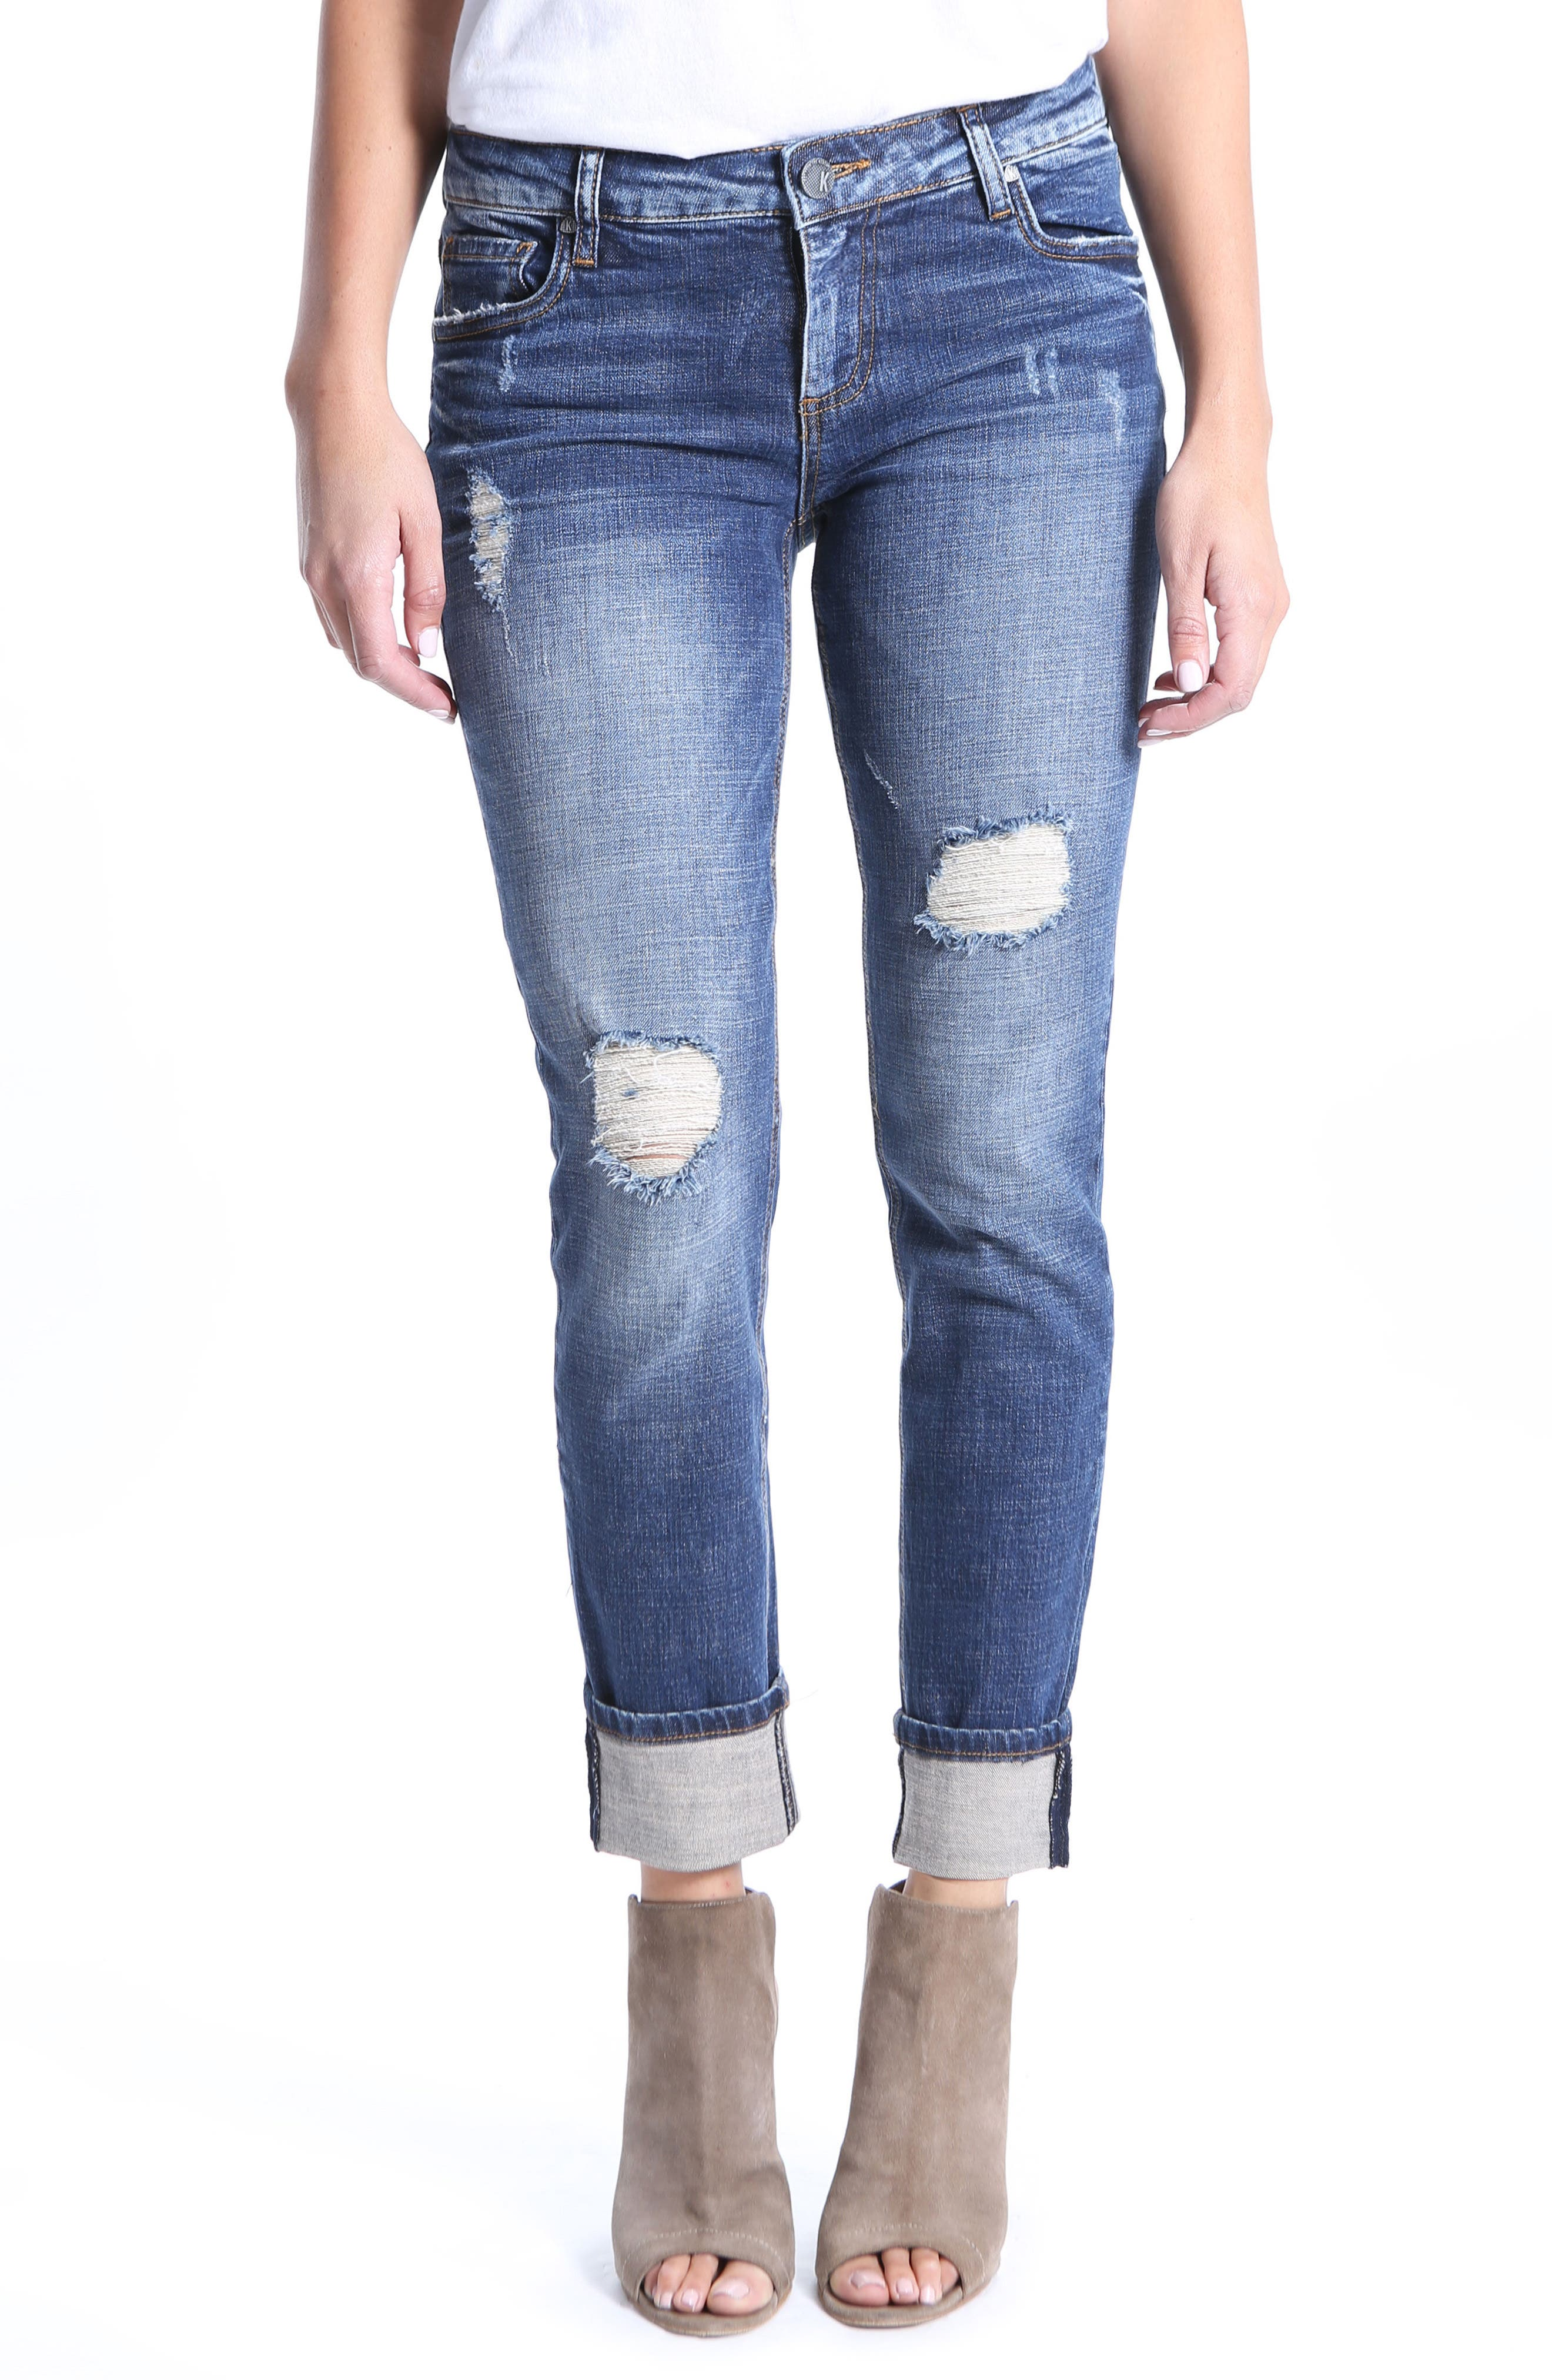 Catherine Ripped Boyfriend Jeans,                             Main thumbnail 1, color,                             400